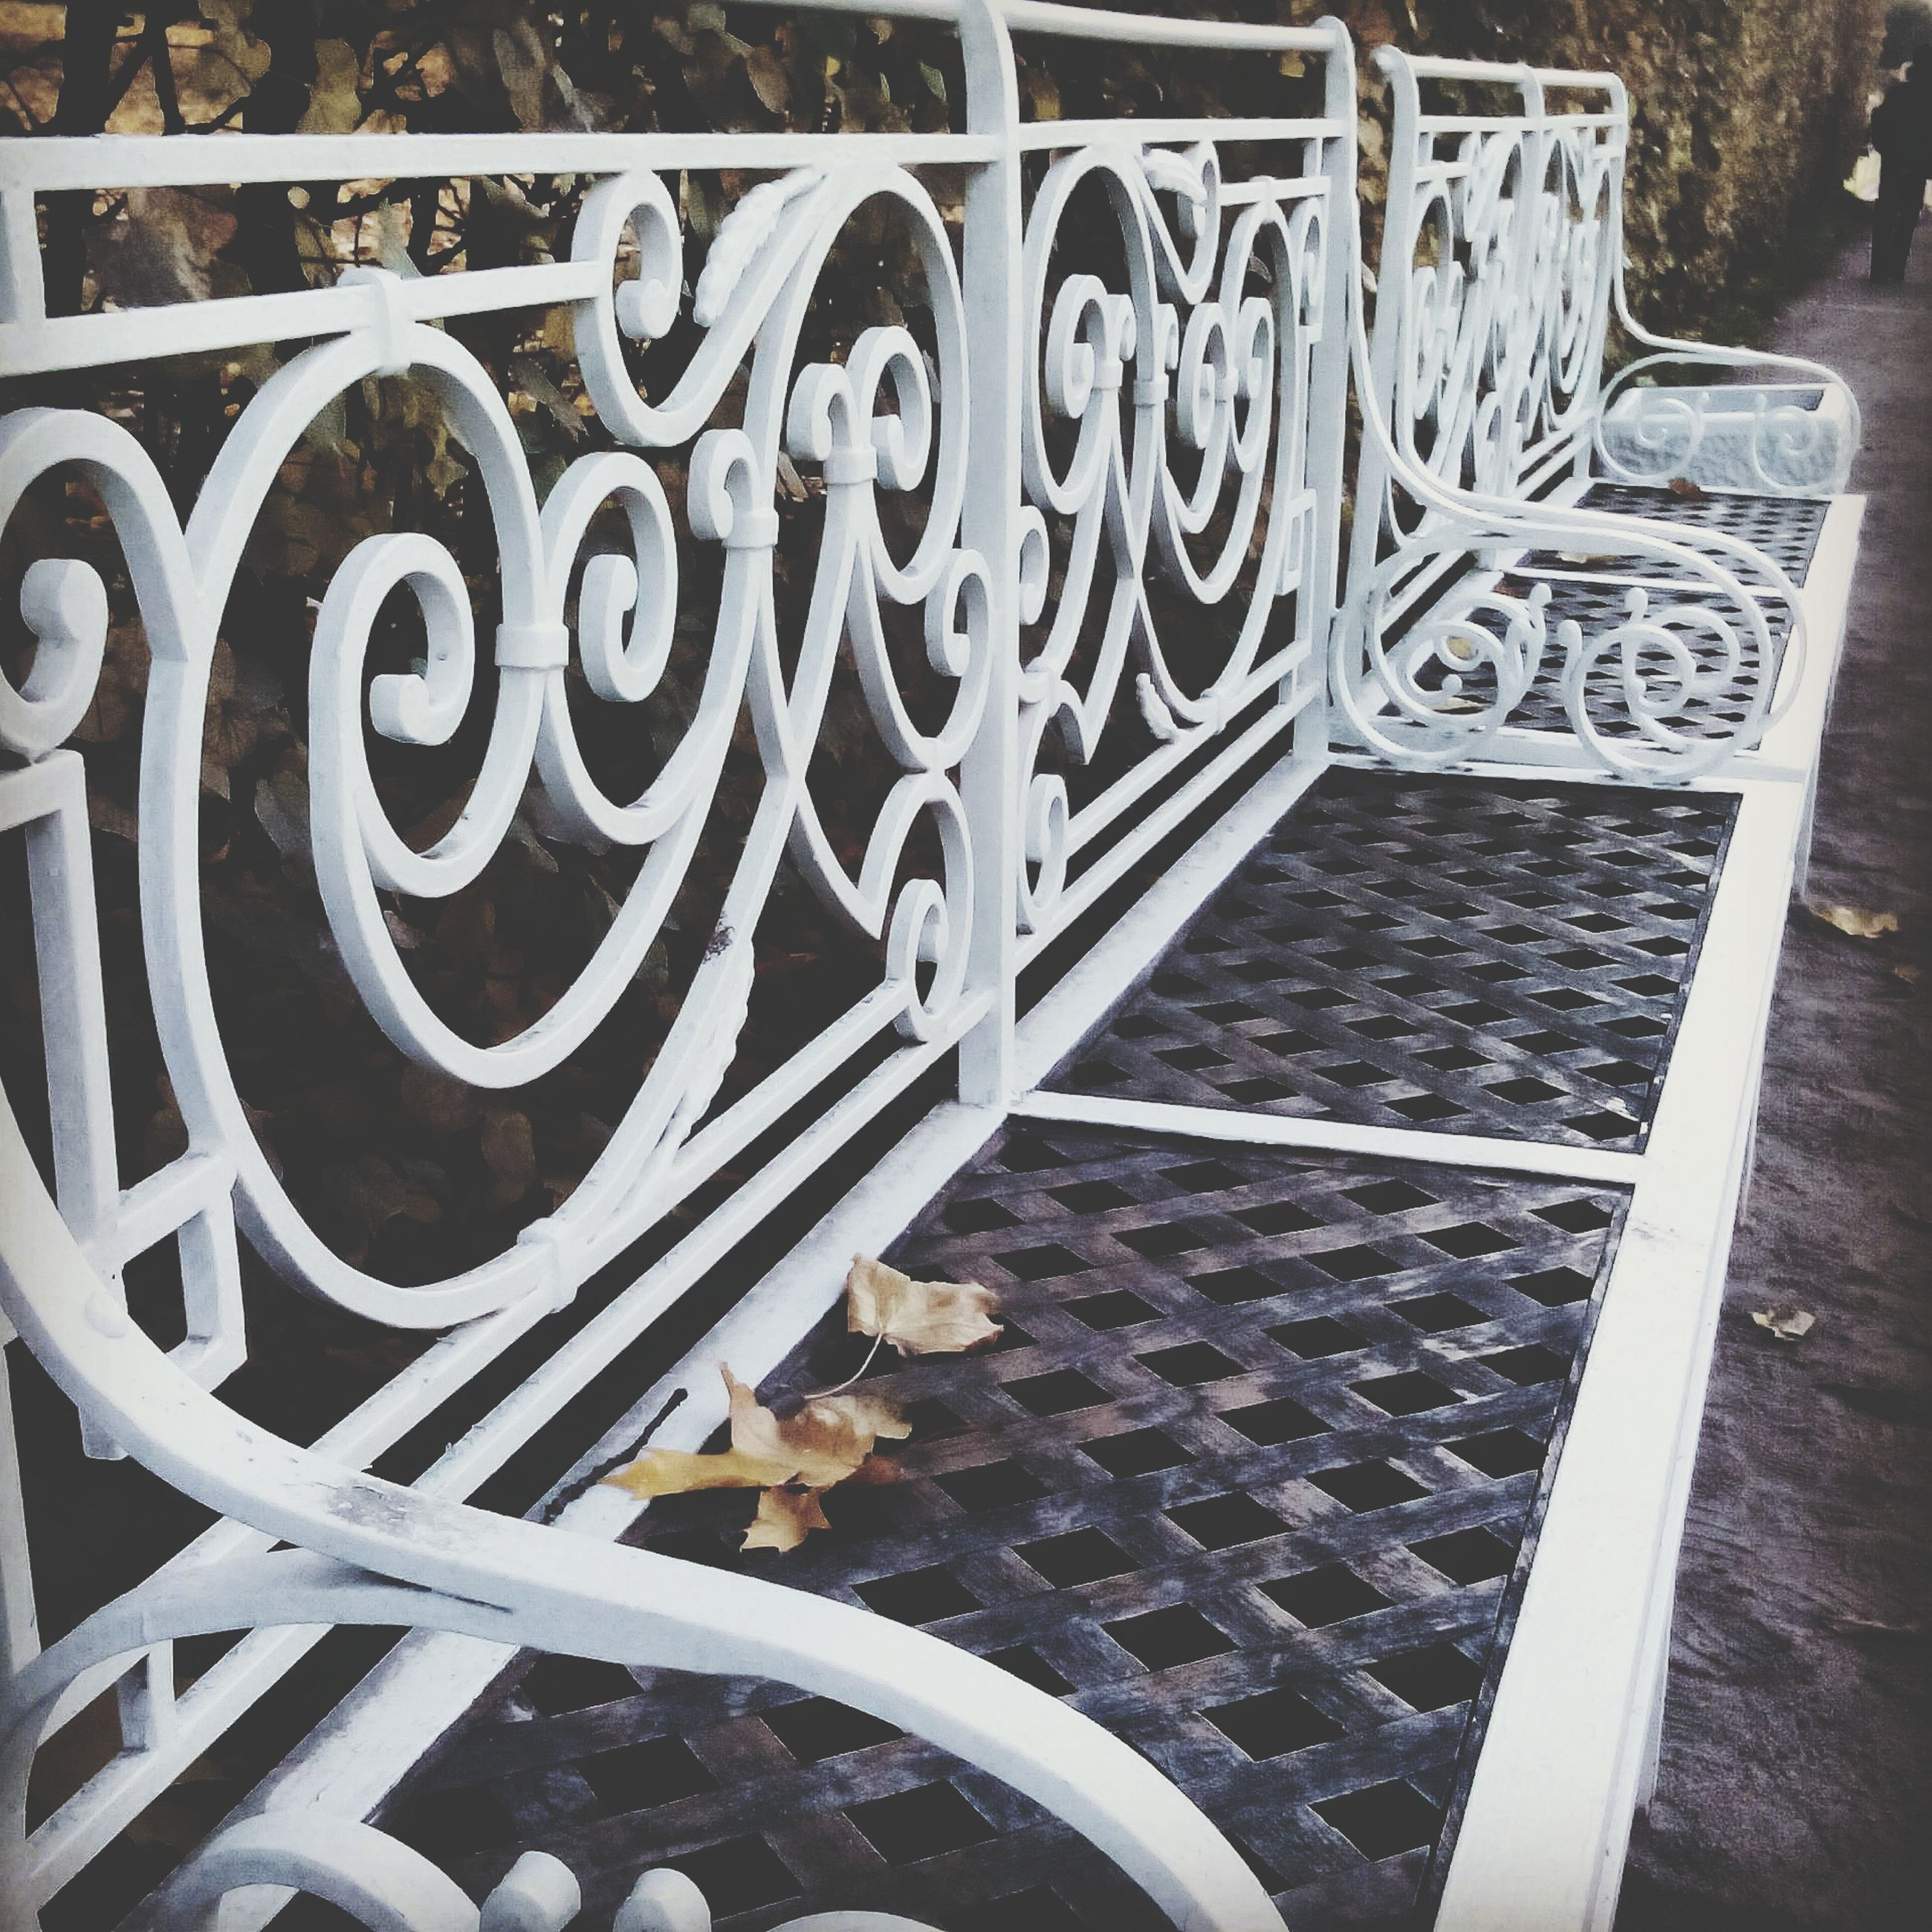 metal, railing, high angle view, transportation, staircase, steps, close-up, metallic, pattern, design, no people, steps and staircases, day, built structure, part of, wheel, outdoors, architecture, old